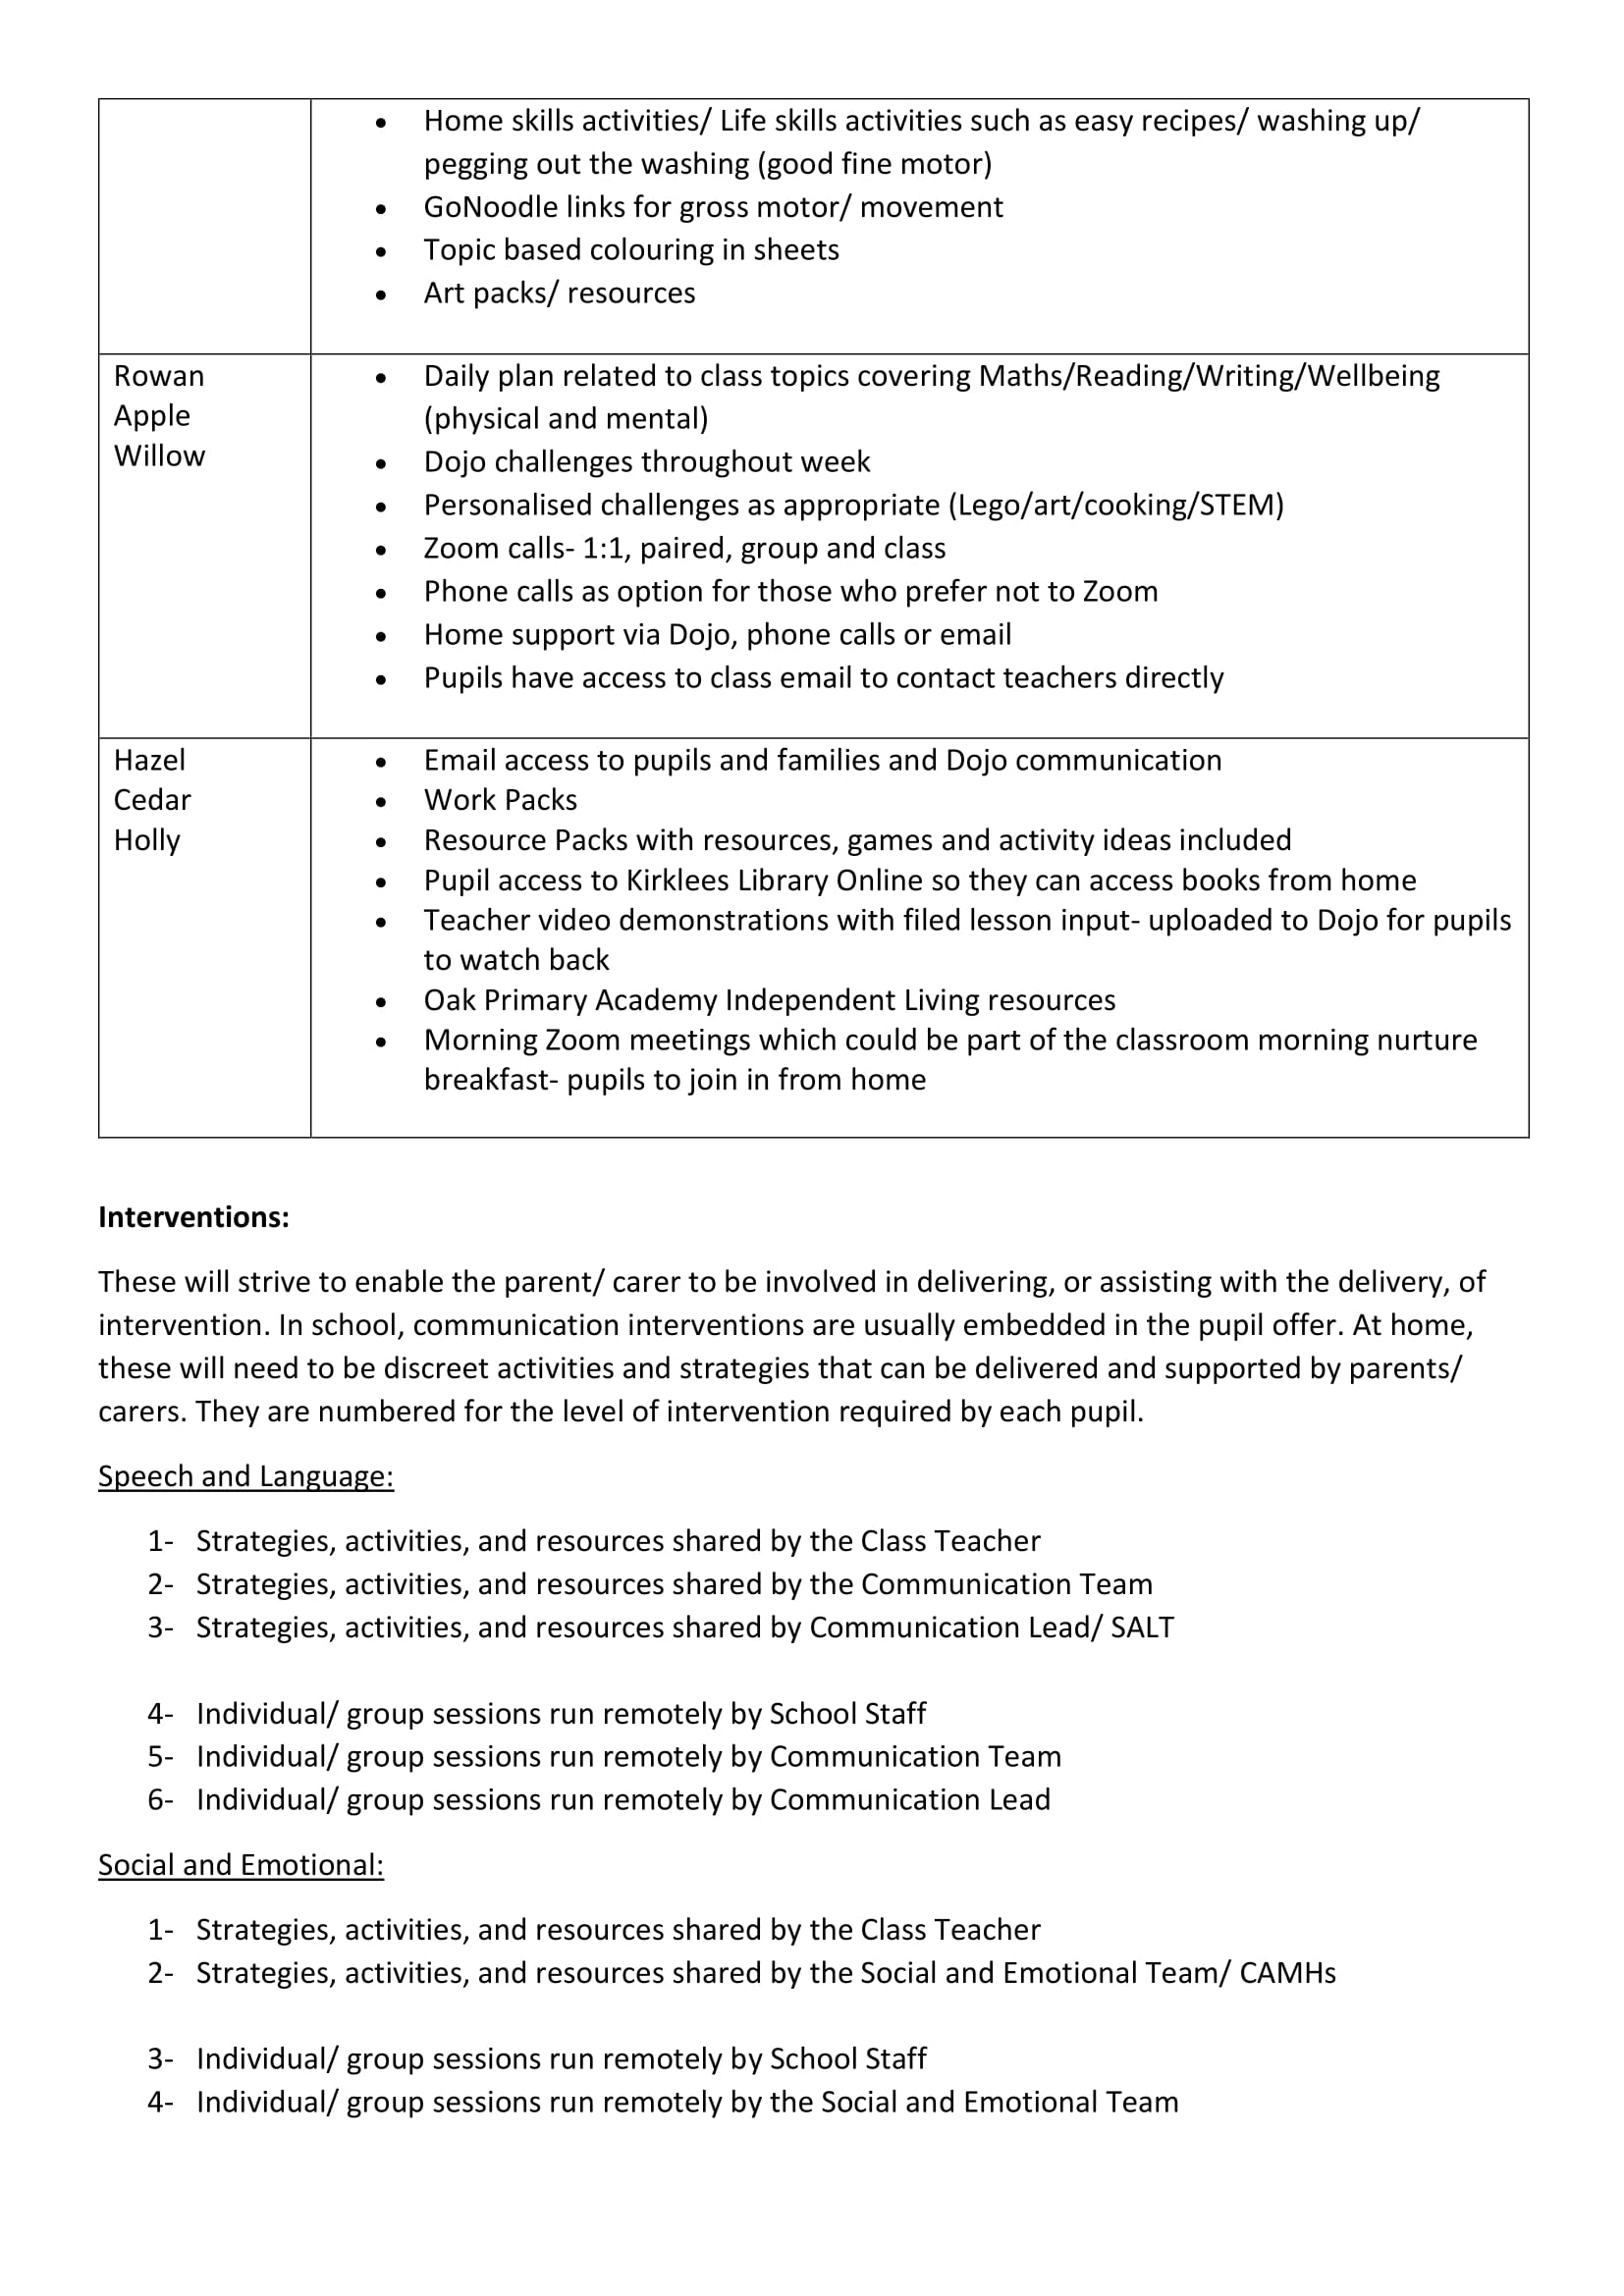 Contingency Plan for Remote Education and Home Learning-3